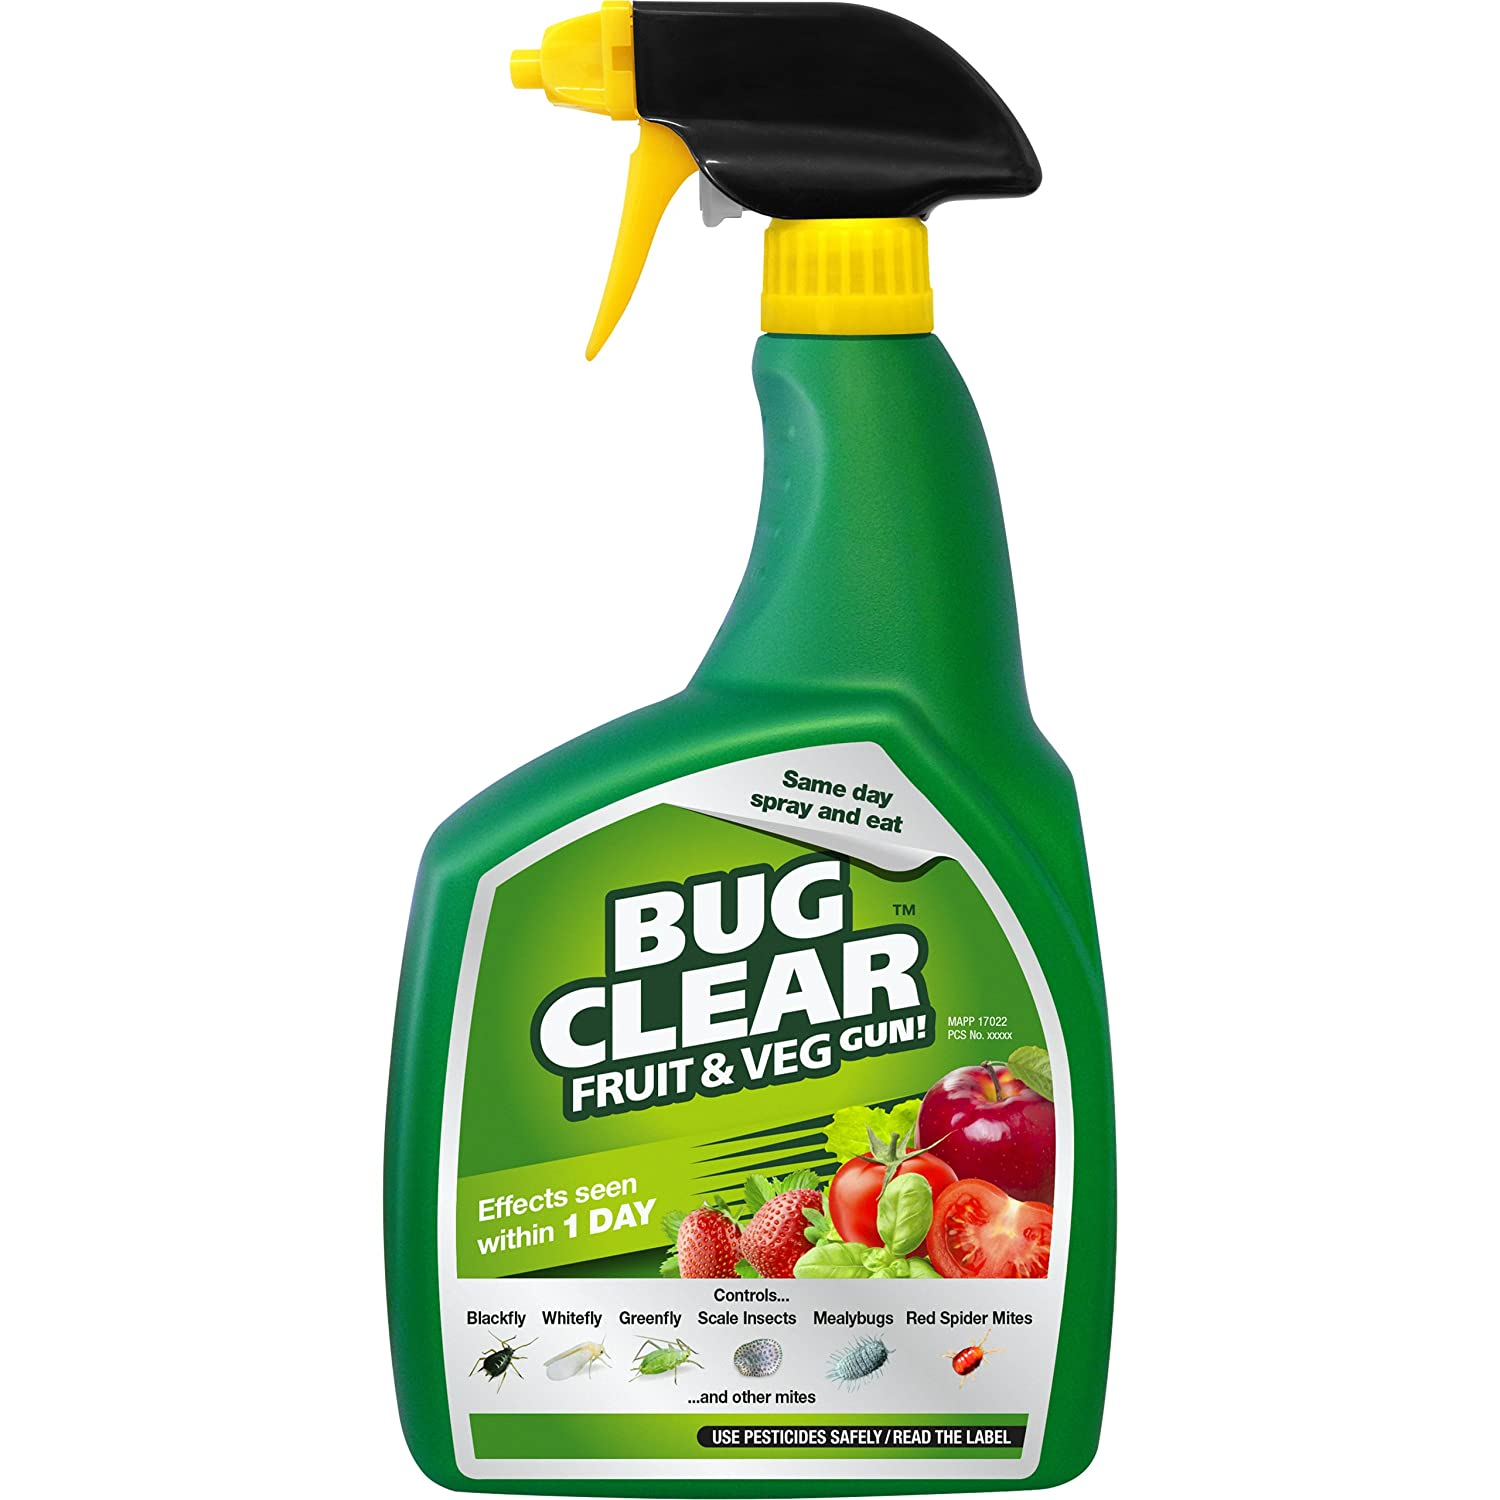 BugClear 019312 Fruit and Veg Gun 800 ml, Clear Evergreen Garden Care Ltd